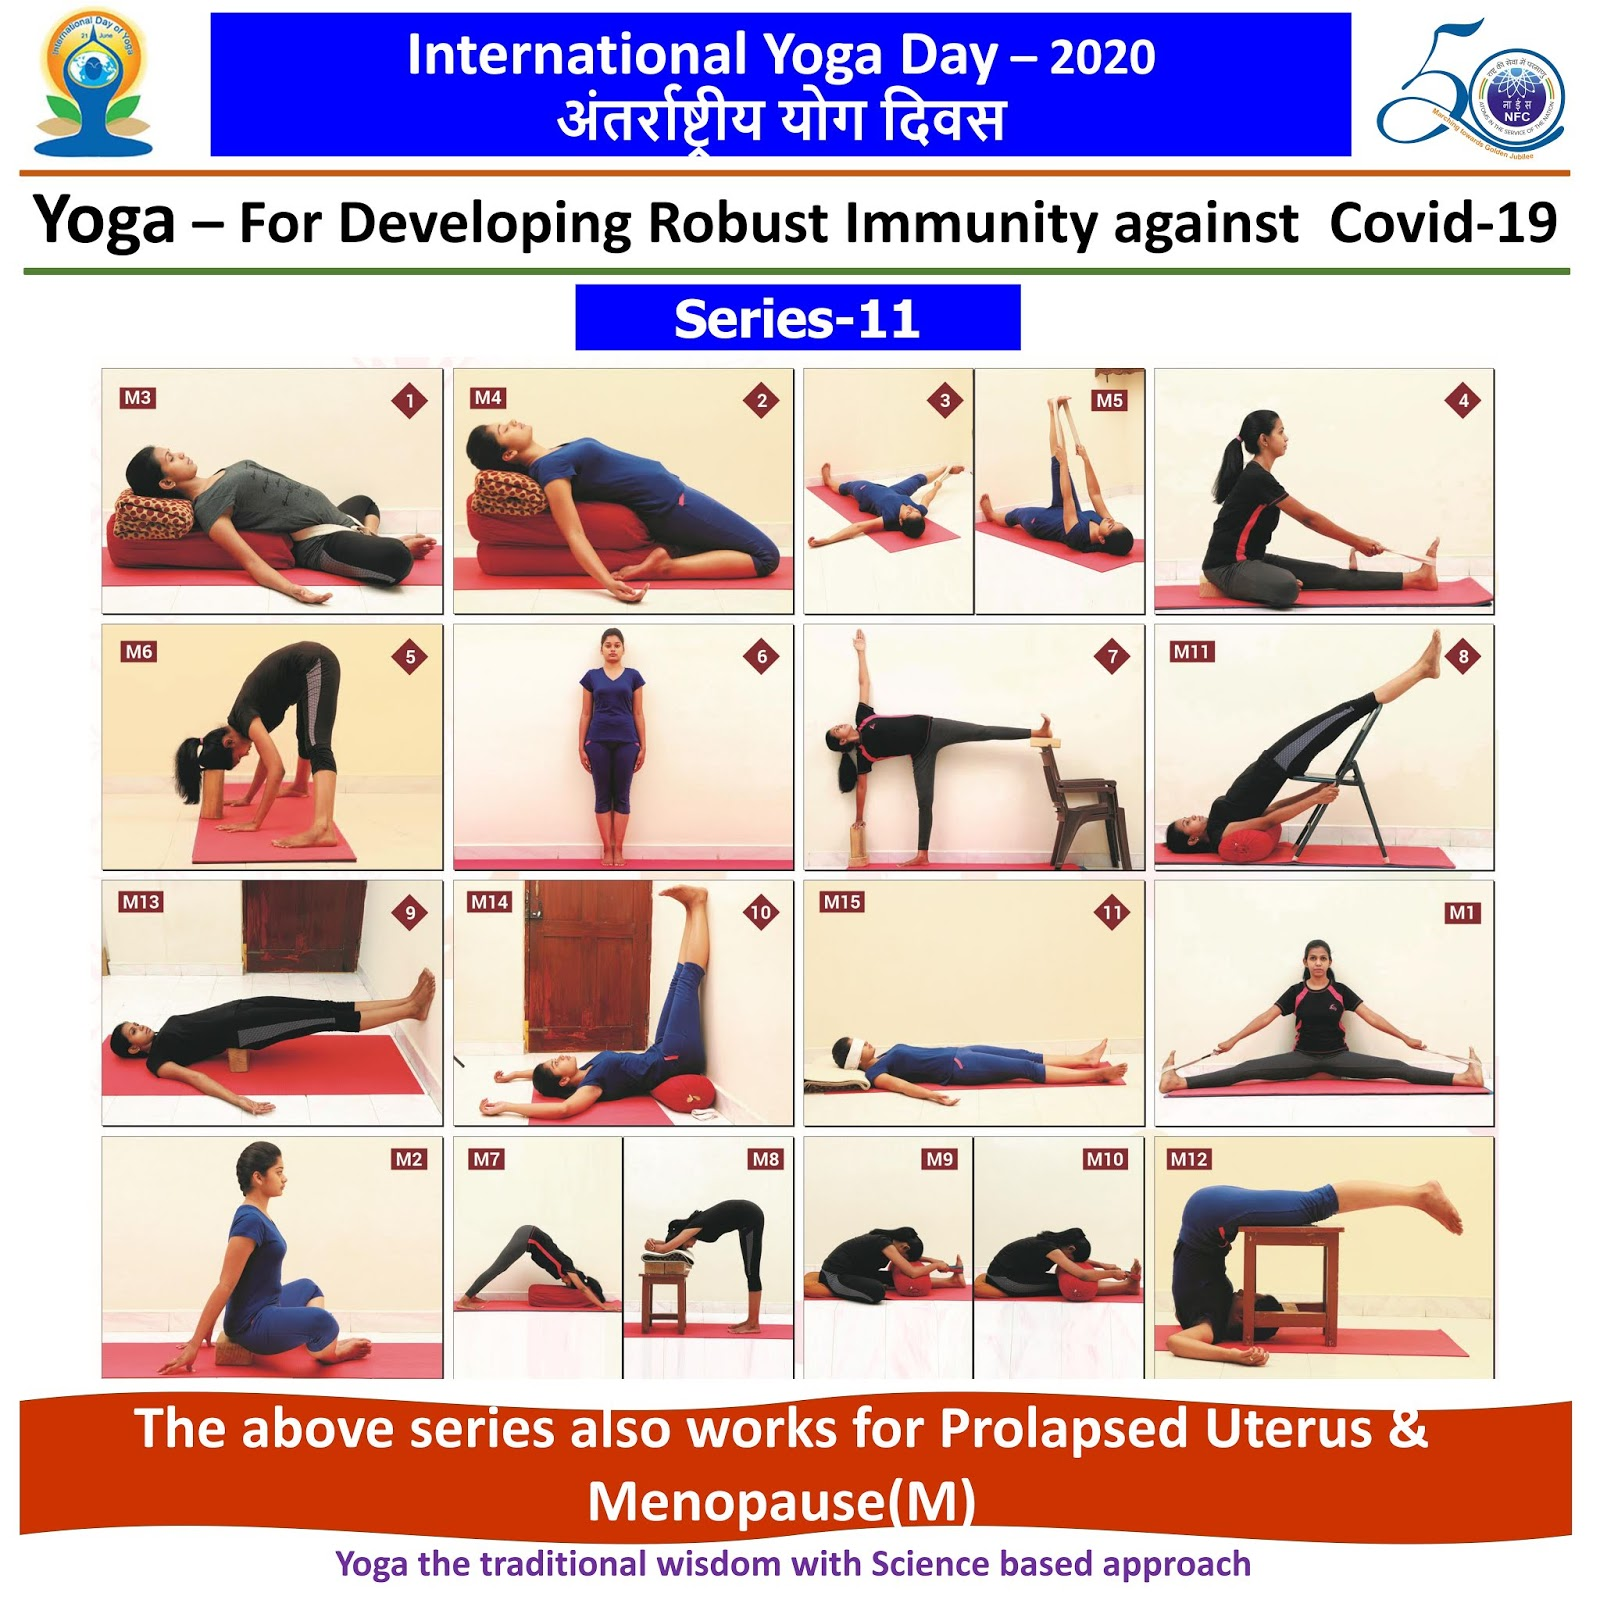 Happy International Yoga Day ... This series also works for Prolapsed Uterus & Menopause(M)  IMAGES, GIF, ANIMATED GIF, WALLPAPER, STICKER FOR WHATSAPP & FACEBOOK